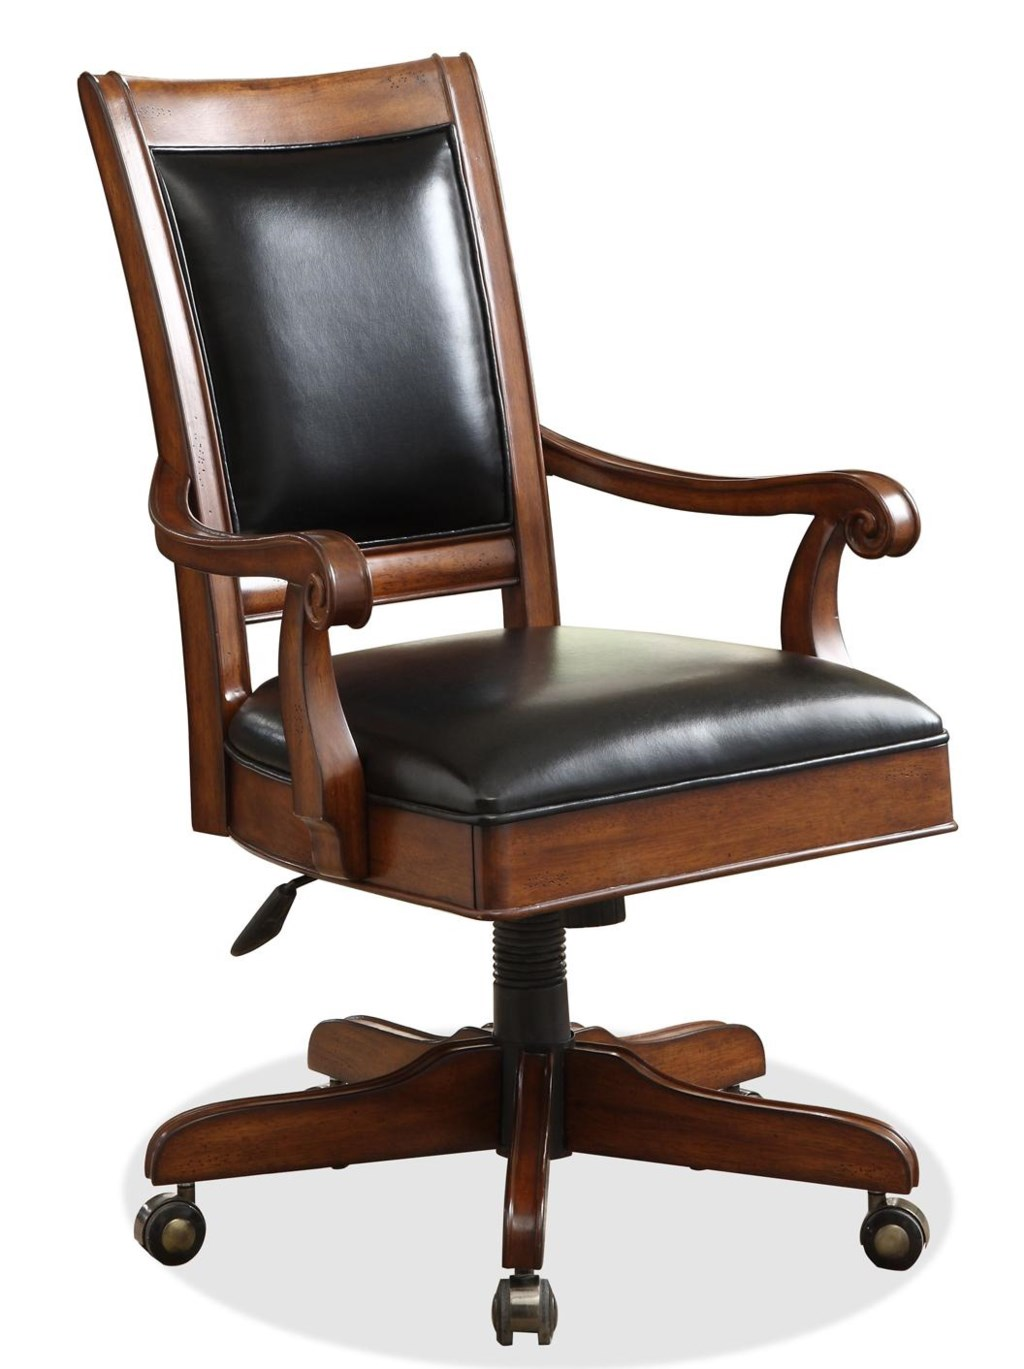 Delectable 40 Wooden Office Chair Inspiration Of Wooden